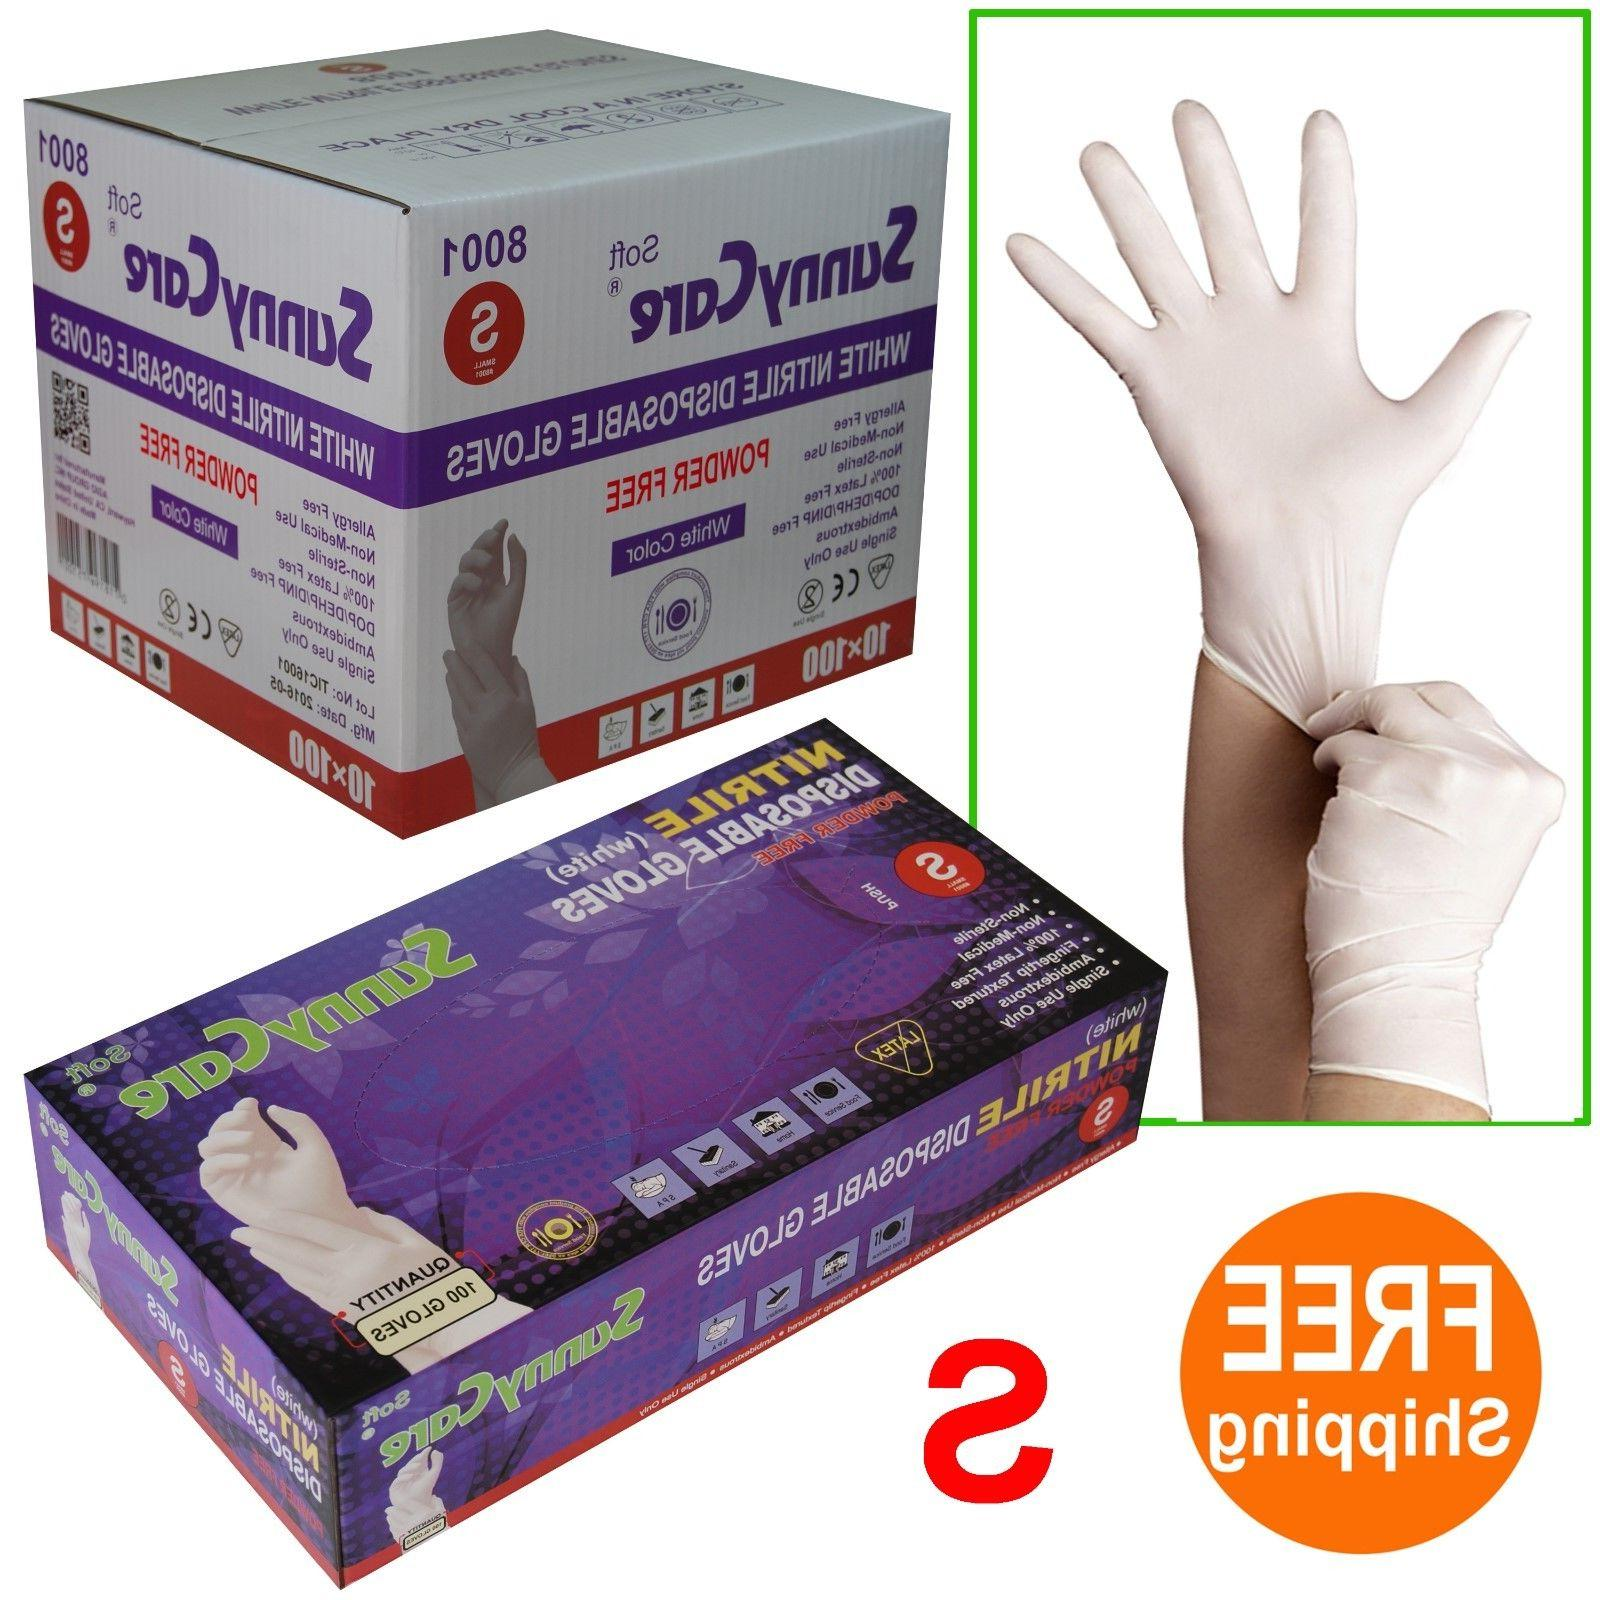 SunnyCare® #8001 White Nitrile Disposable Gloves Powder Fre